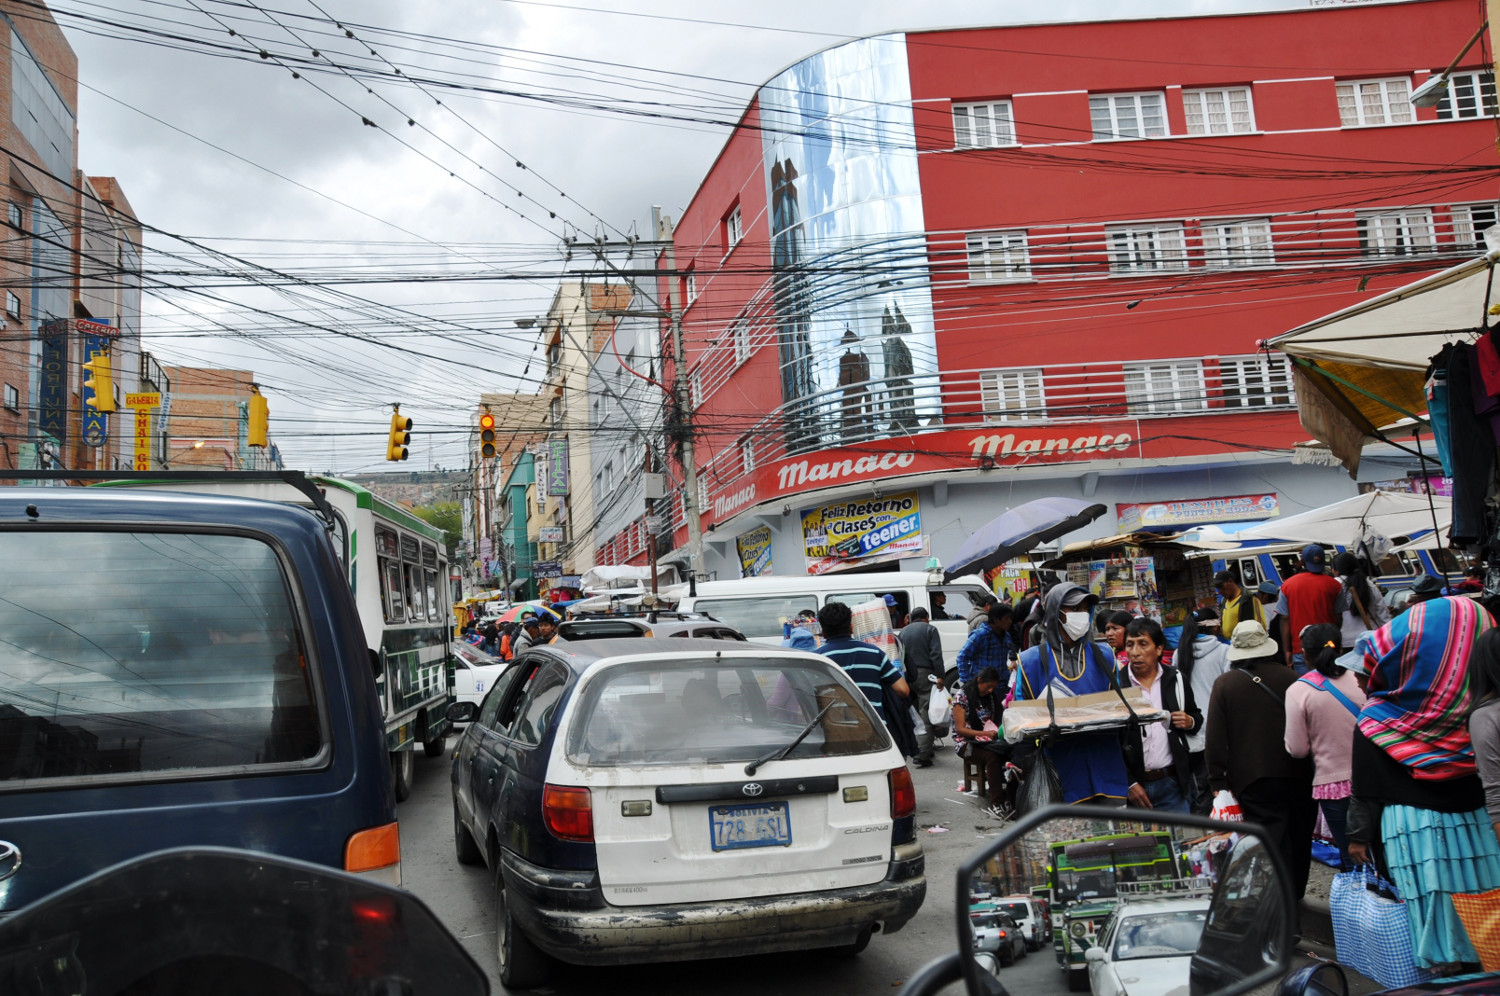 Verkehr in La Paz: Kampf um jeden Quadratmeter | Traffic in La Paz: a battle for every square meter